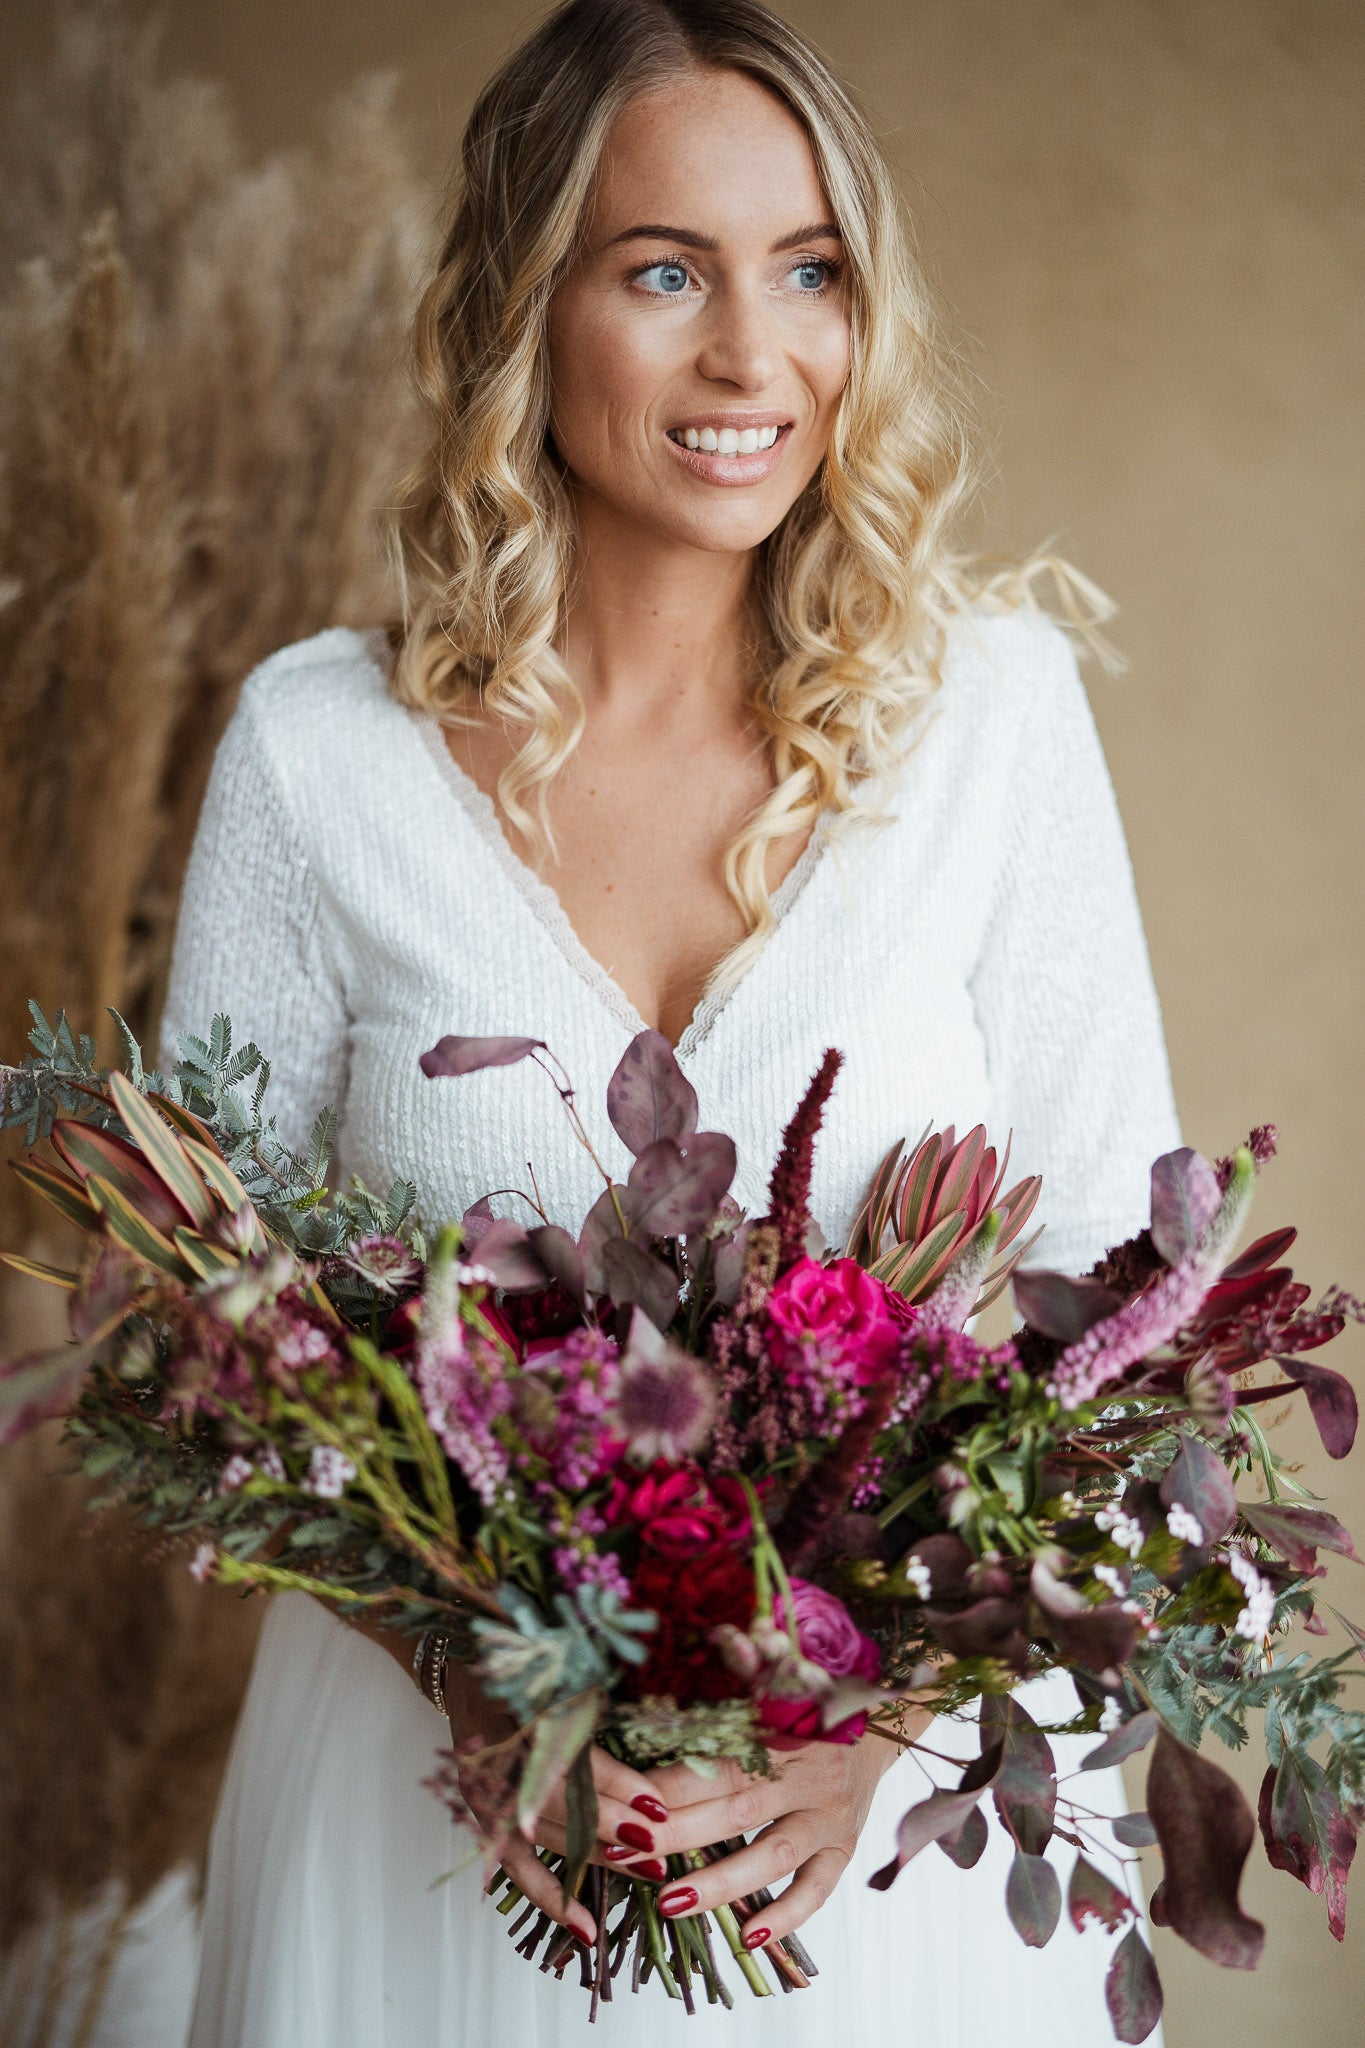 Blumen Workshop, Flower School, Wedding, Flowers, Weddingflowers